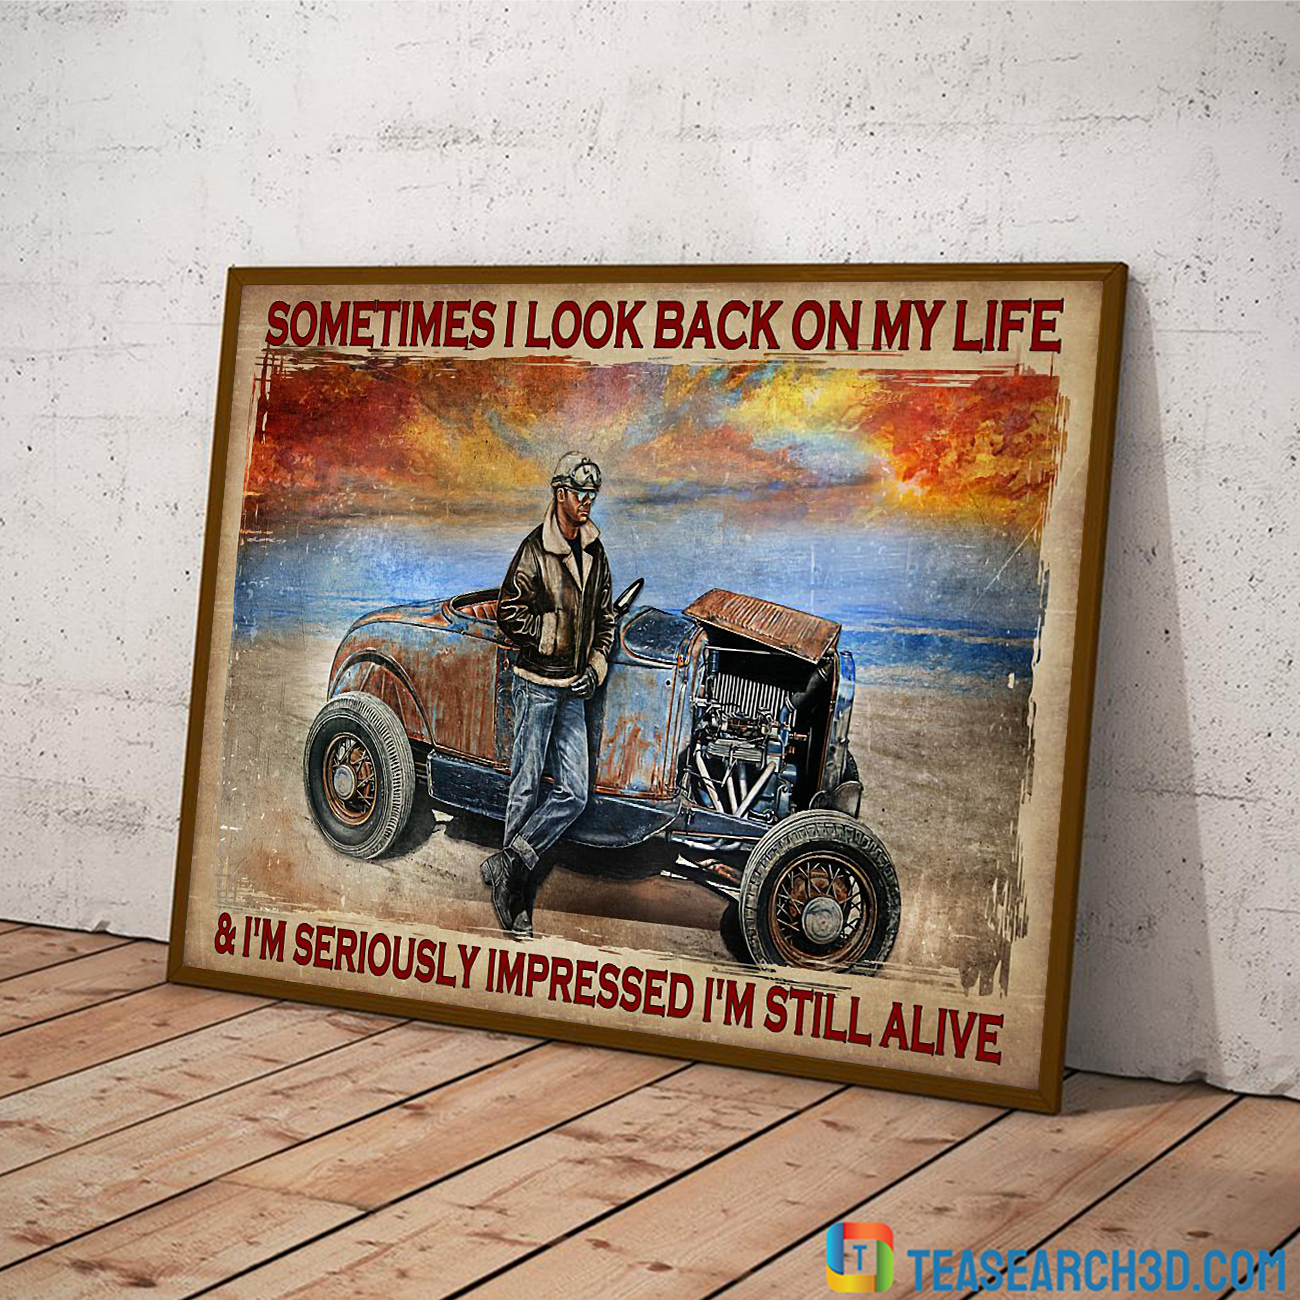 Hot rod sometimes I look back on my life poster A1